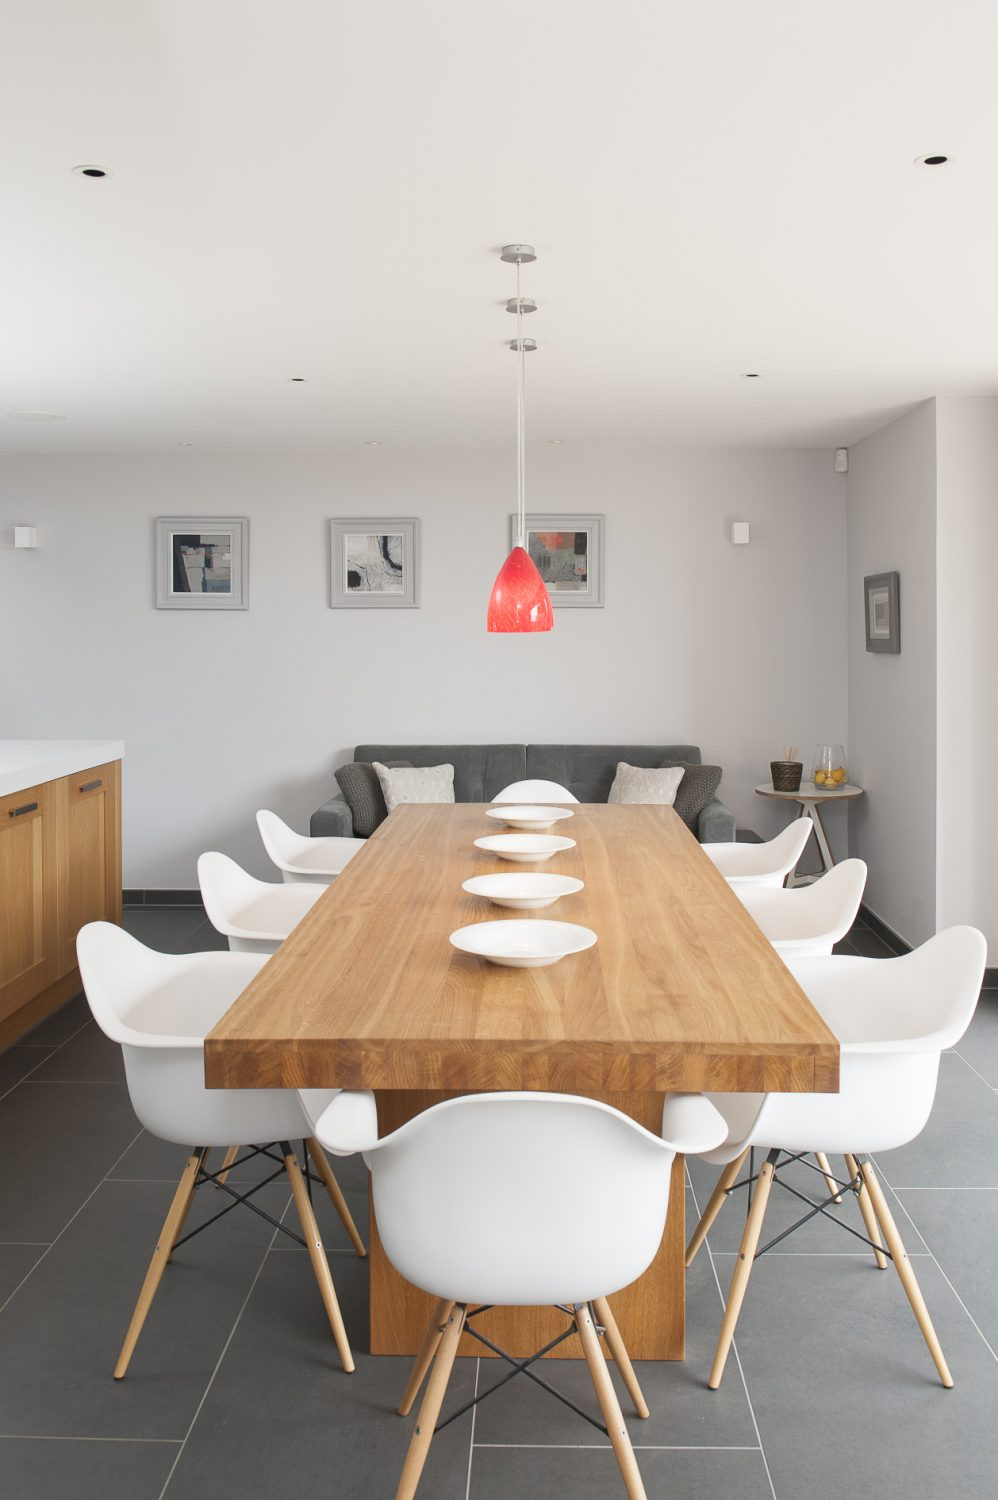 In the kitchen bi-folding doors lead out onto an elegant sandstone terrace and its Lloyd Loom table and chairs. The units and surfaces and island are courtesy of Cambridge Kitchens, the dining table and Eames-style chairs are from John Lewis